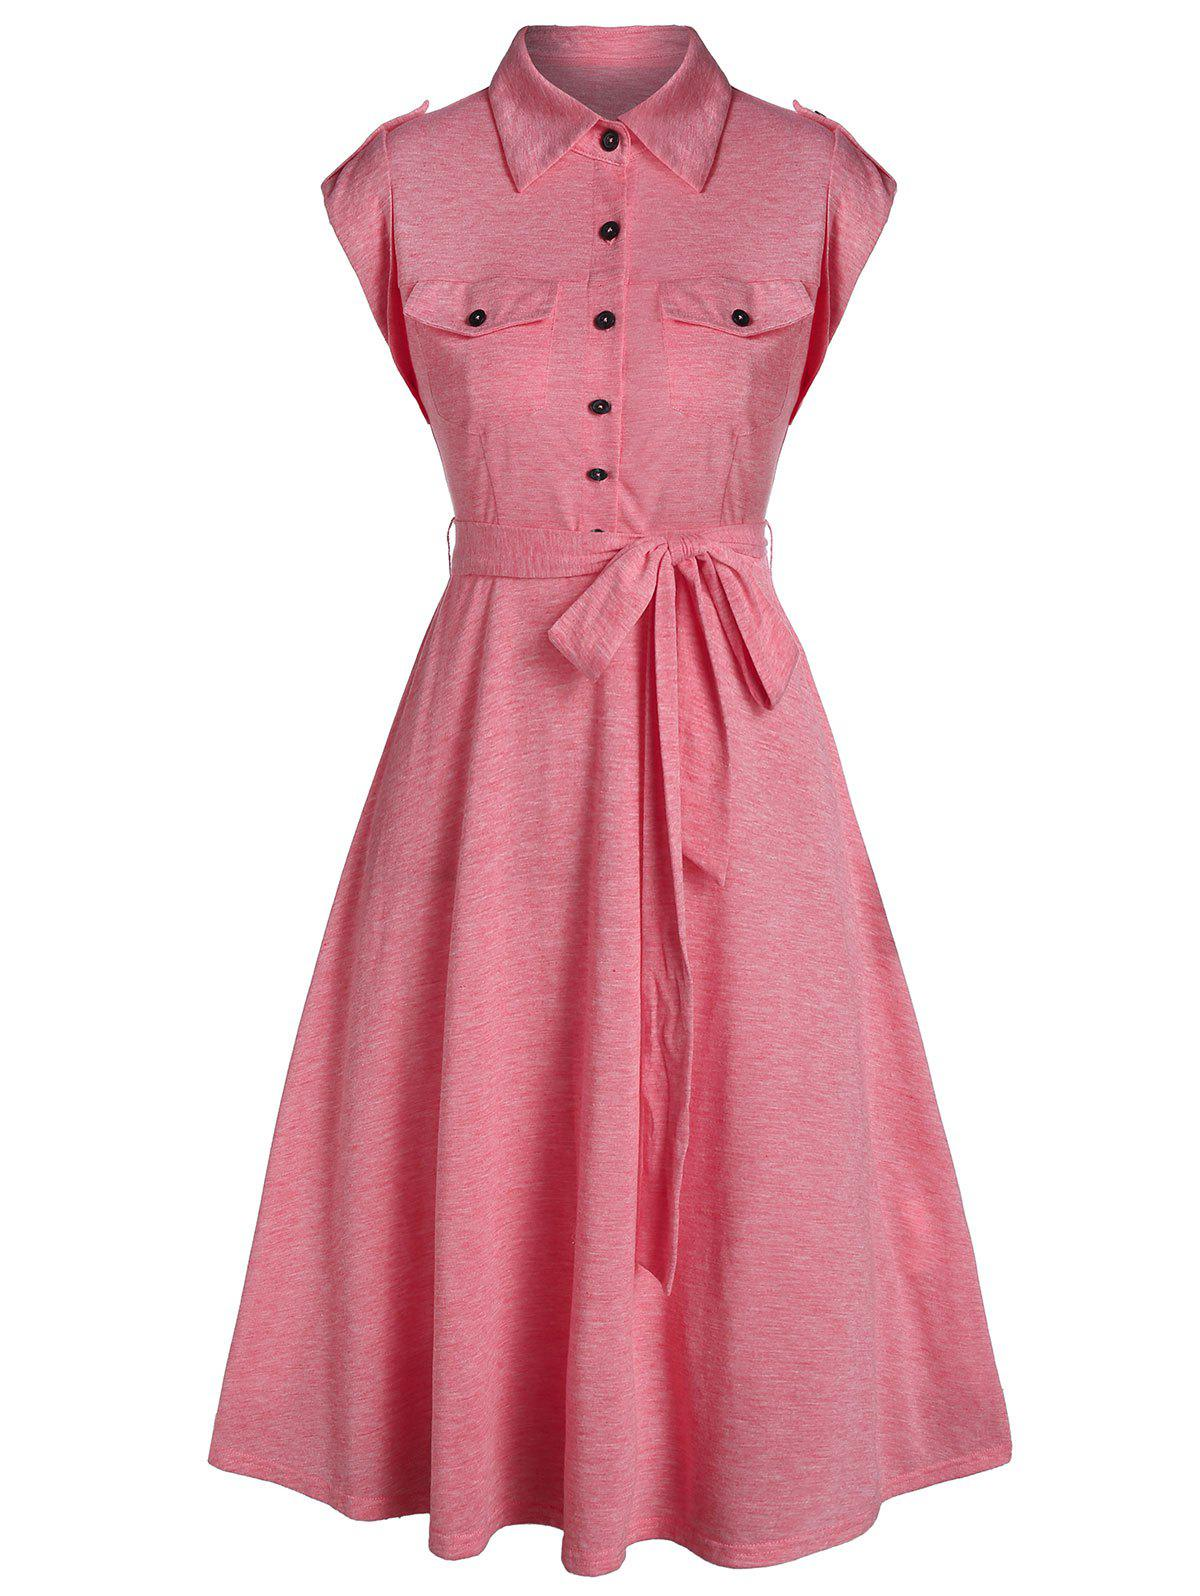 Half Button Double Pocket Belted Flare Dress - PINK M